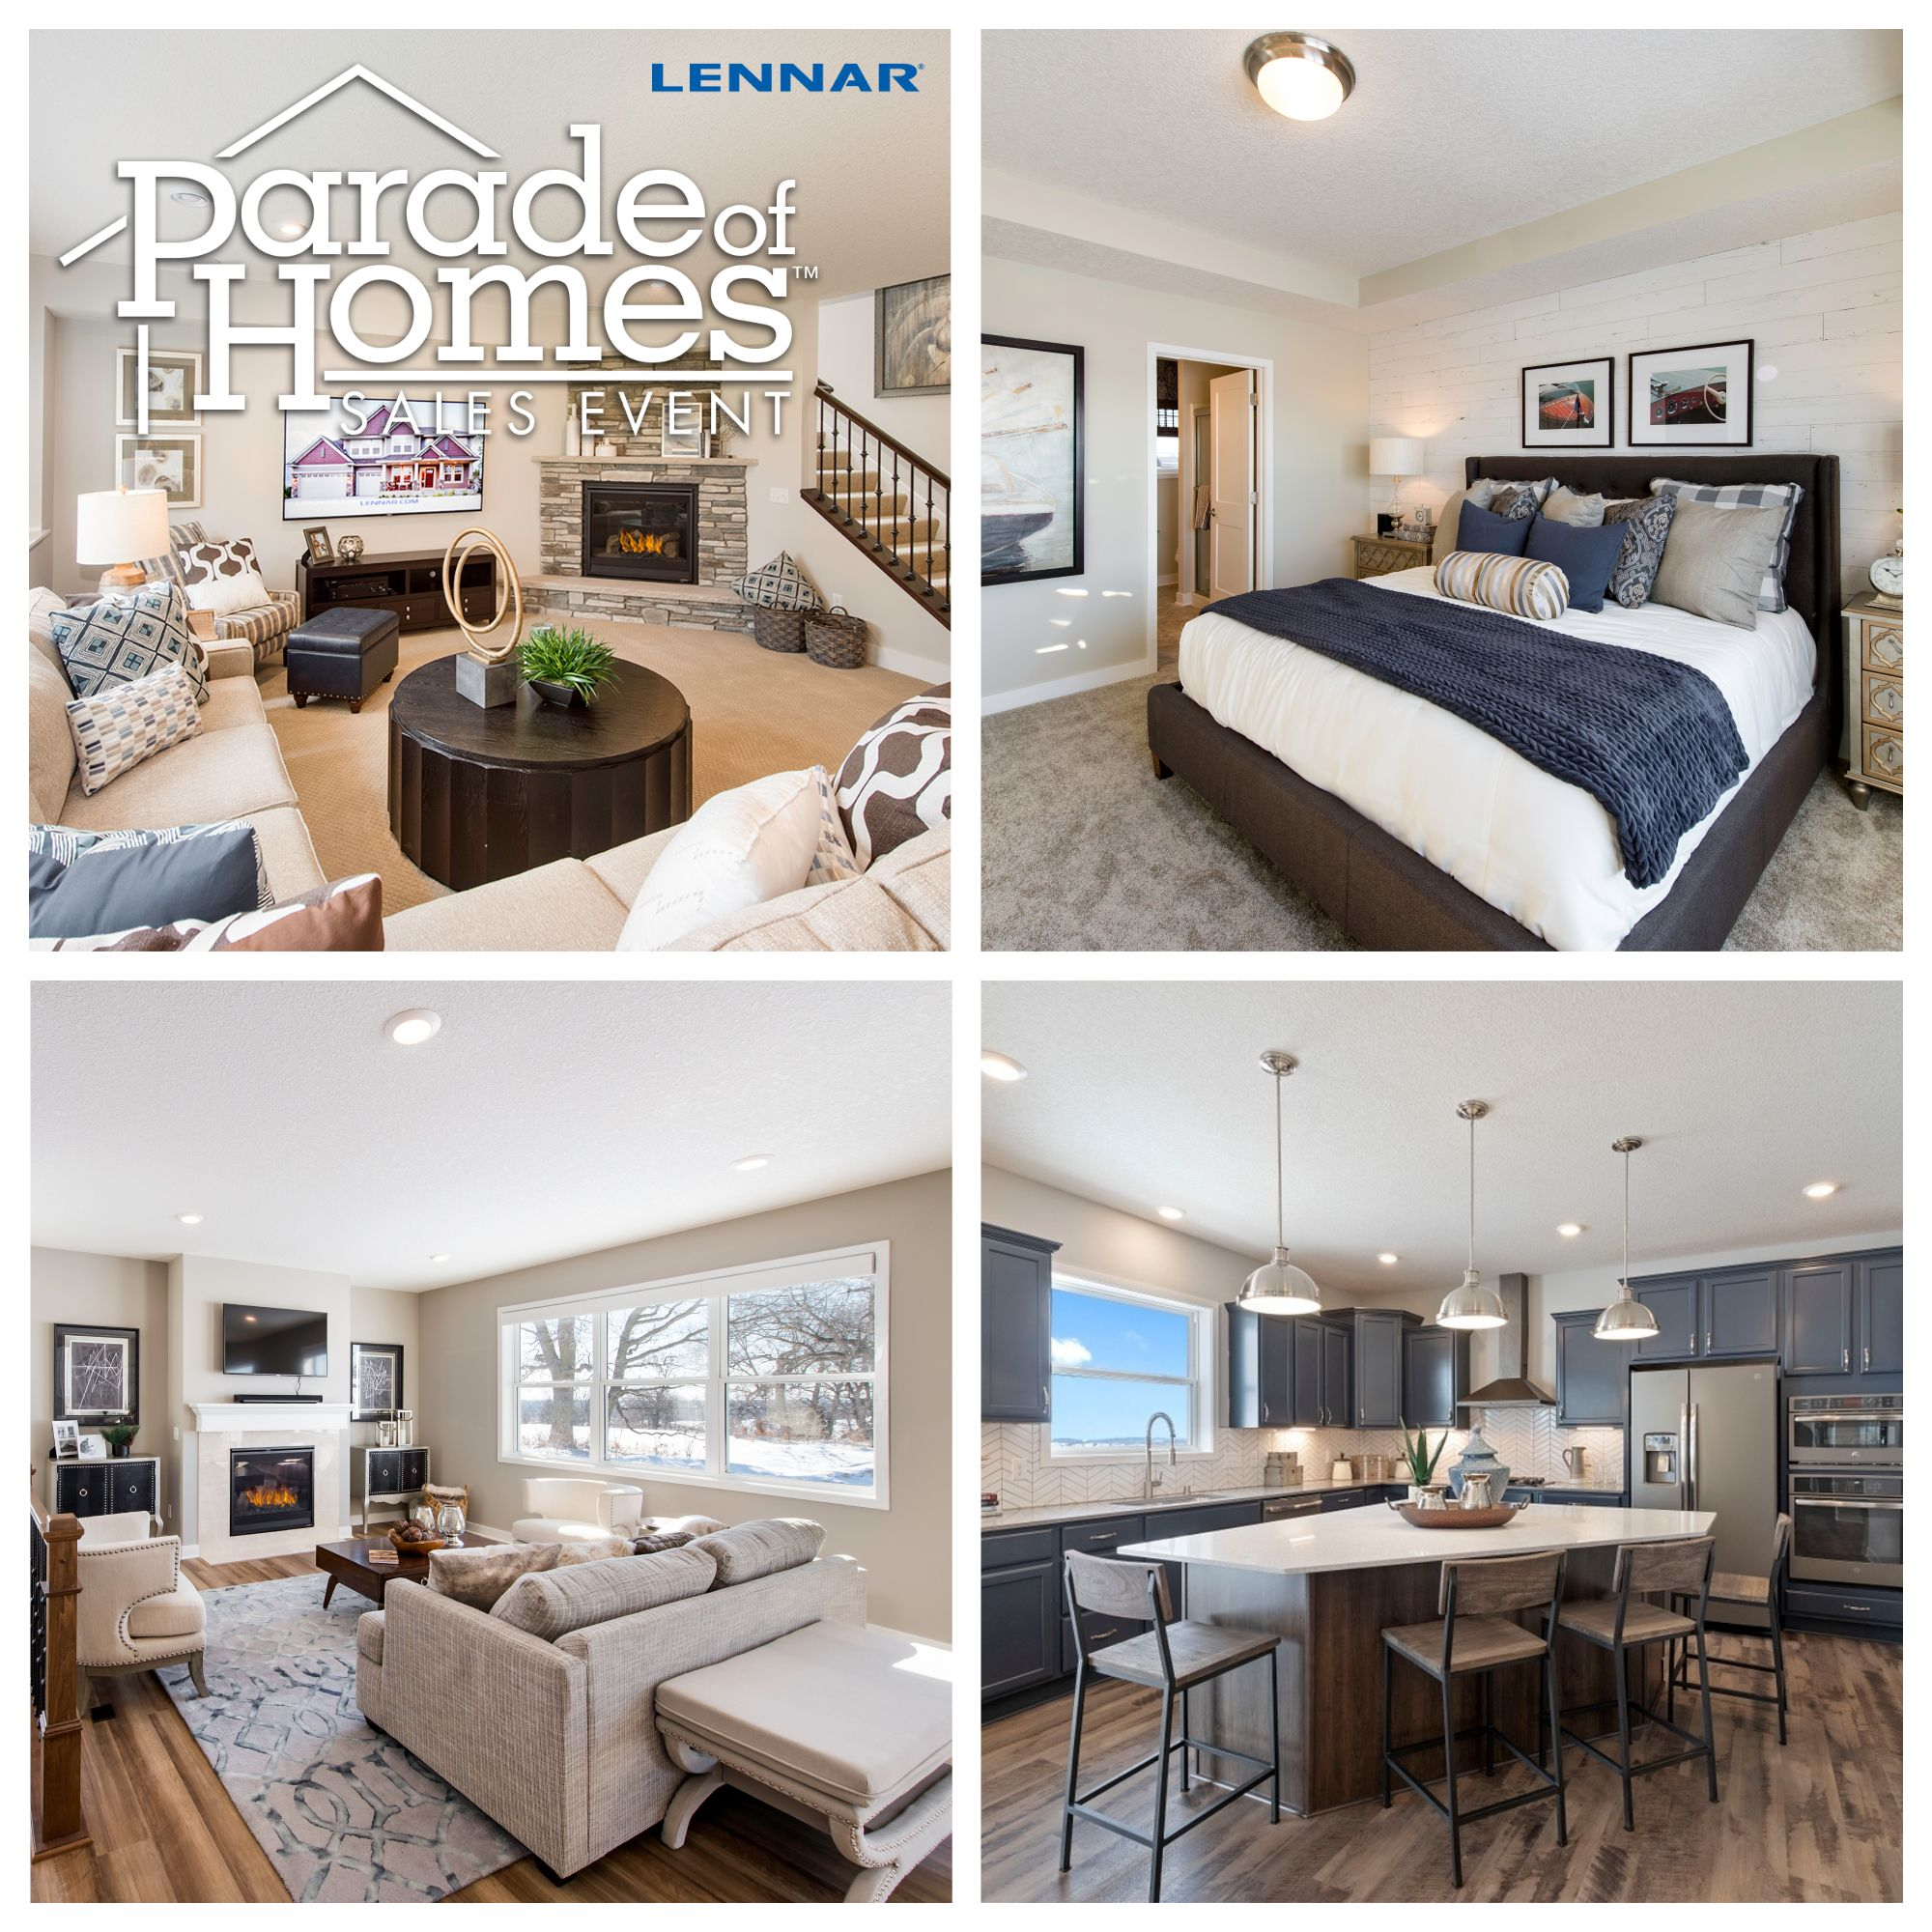 Parade Of Homes Come Check Out Lennar S Wide Variety Of Homes Minnesota Home New Home Builders New Home Construction